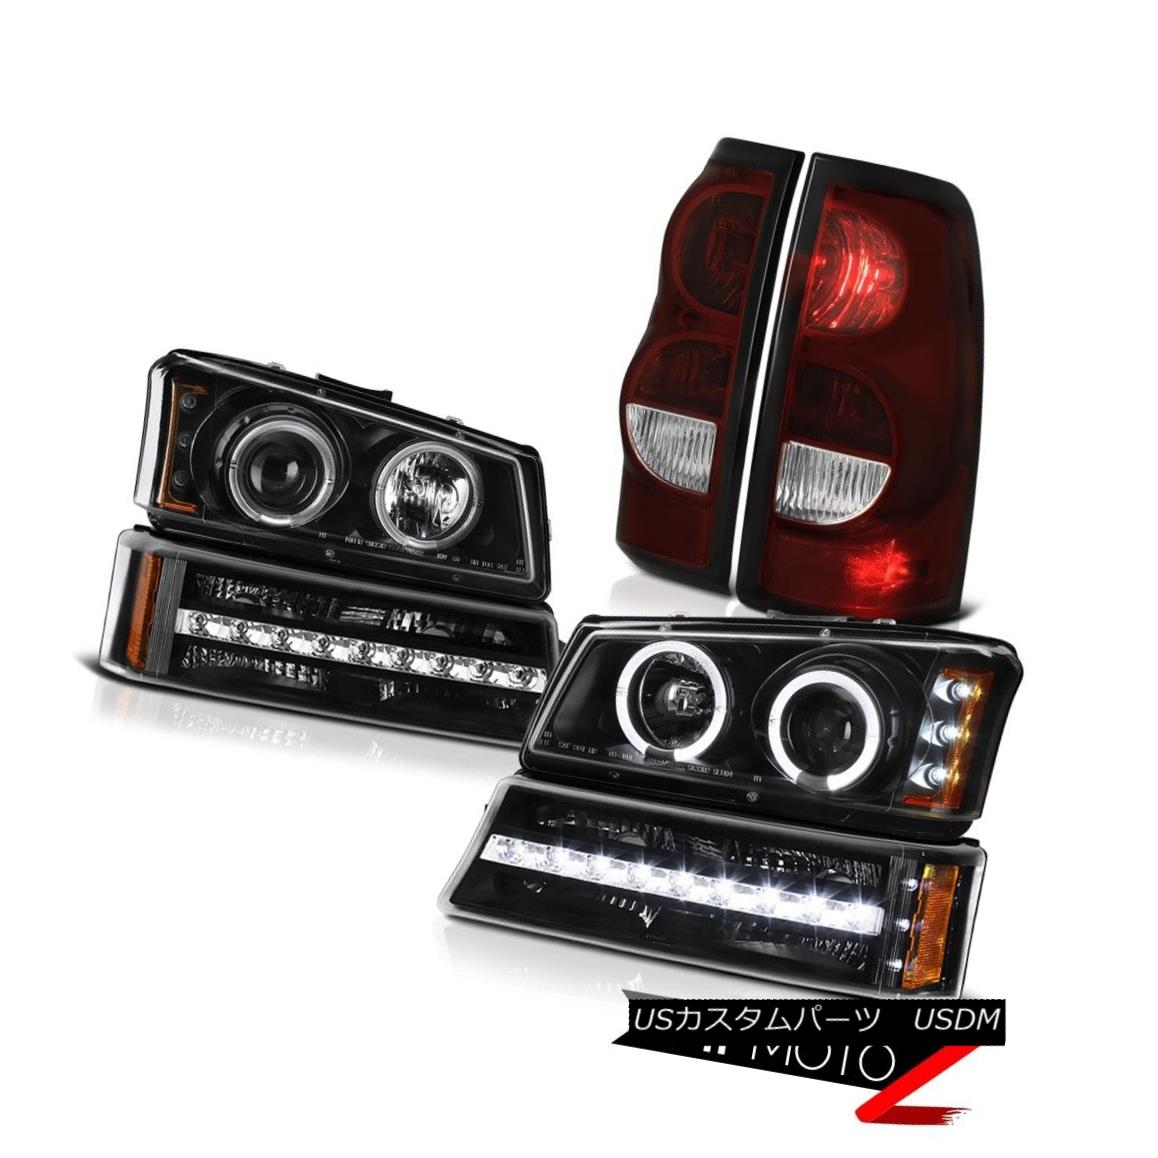 テールライト 03 04 05 06 Silverado Tail Lights Inky Black Turn Signal Projector Headlights 03 04 05 06 SilveradoテールライトInky Black Turnシグナルプロジェクターヘッドライト